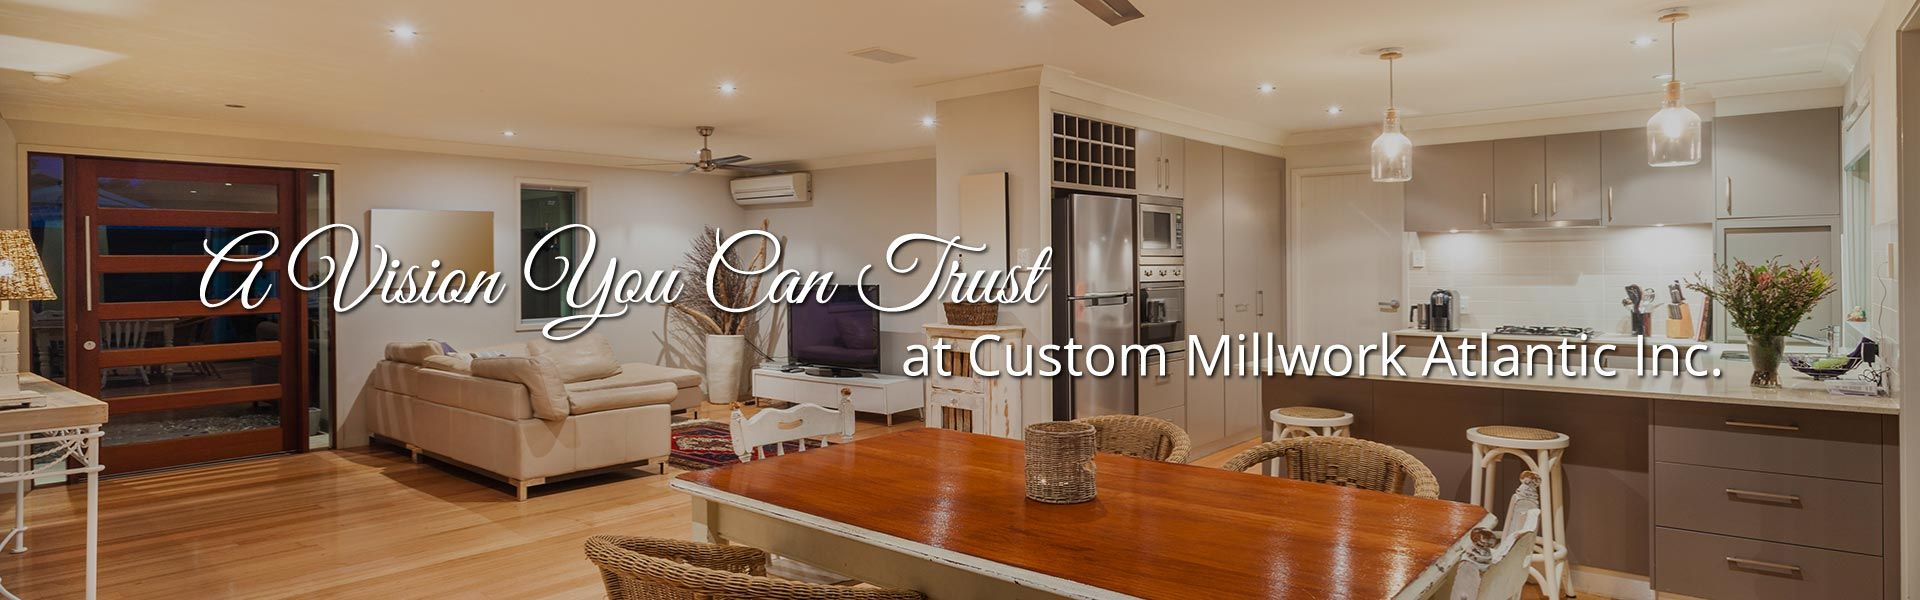 A Vision You Can Trust at Custom Millwork Atlantic Inc. | home interior